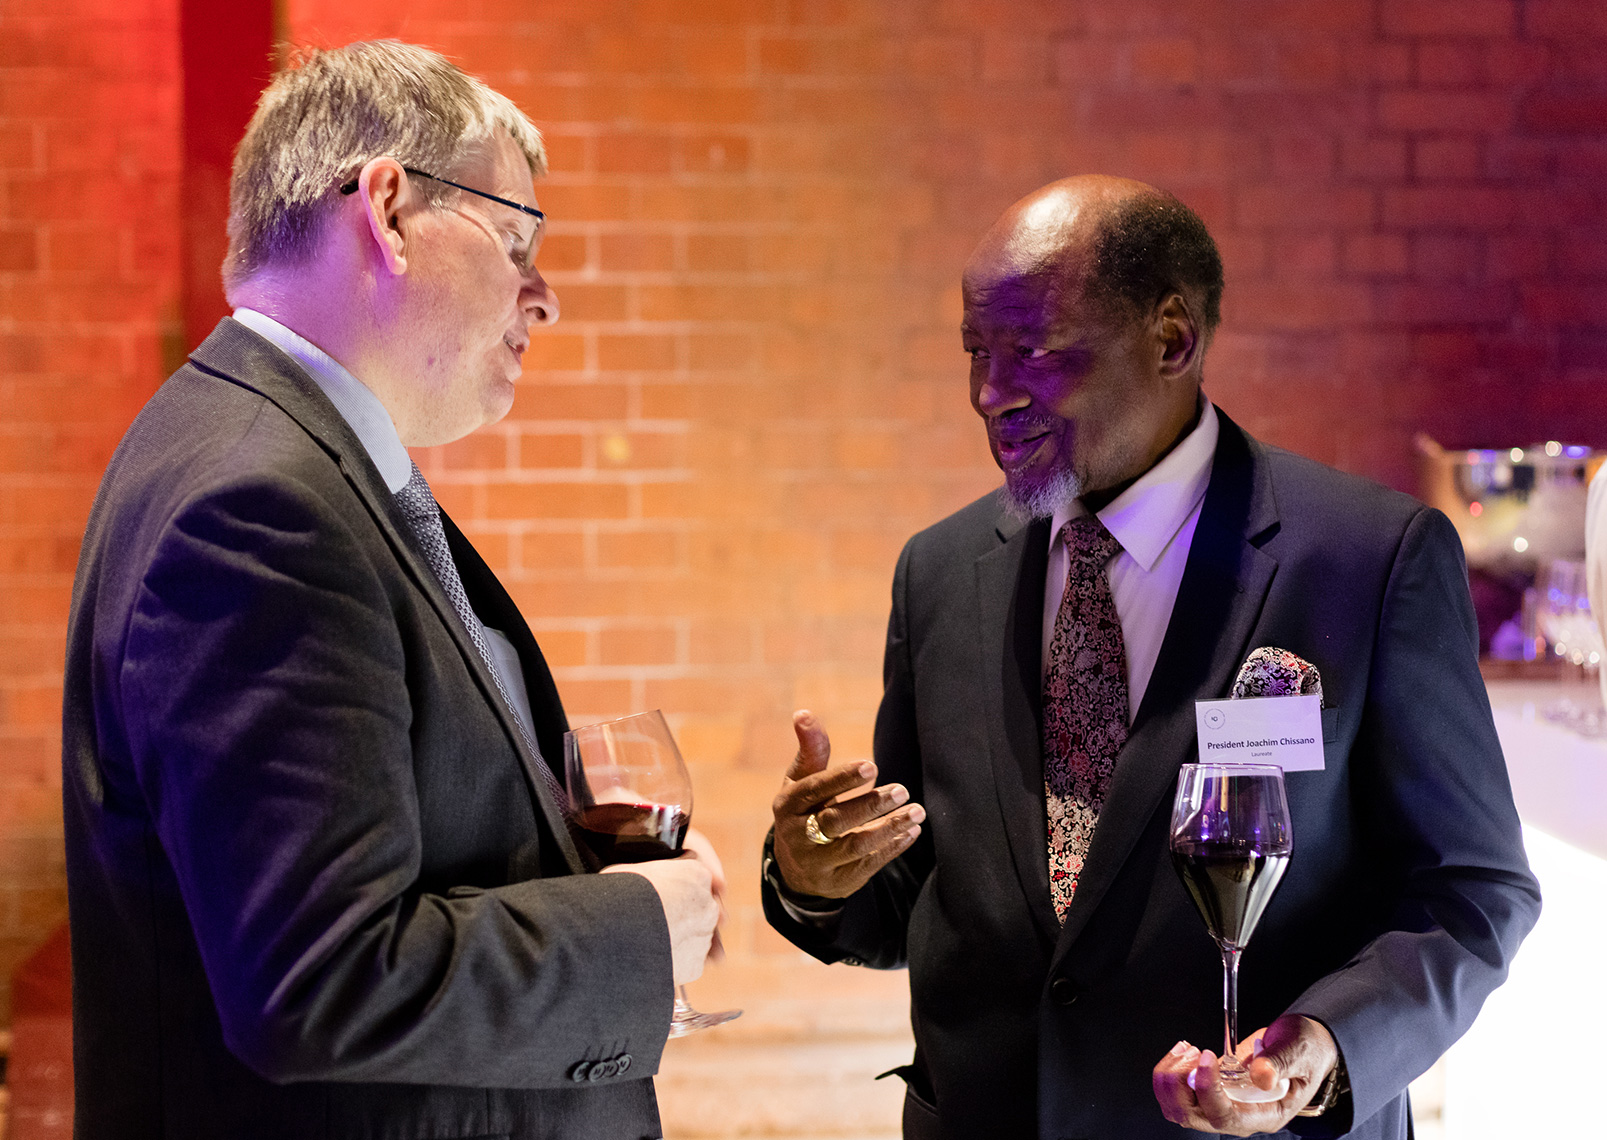 President Joaquim Chissano wearing grey suit making conversation with businessman at gala event in London